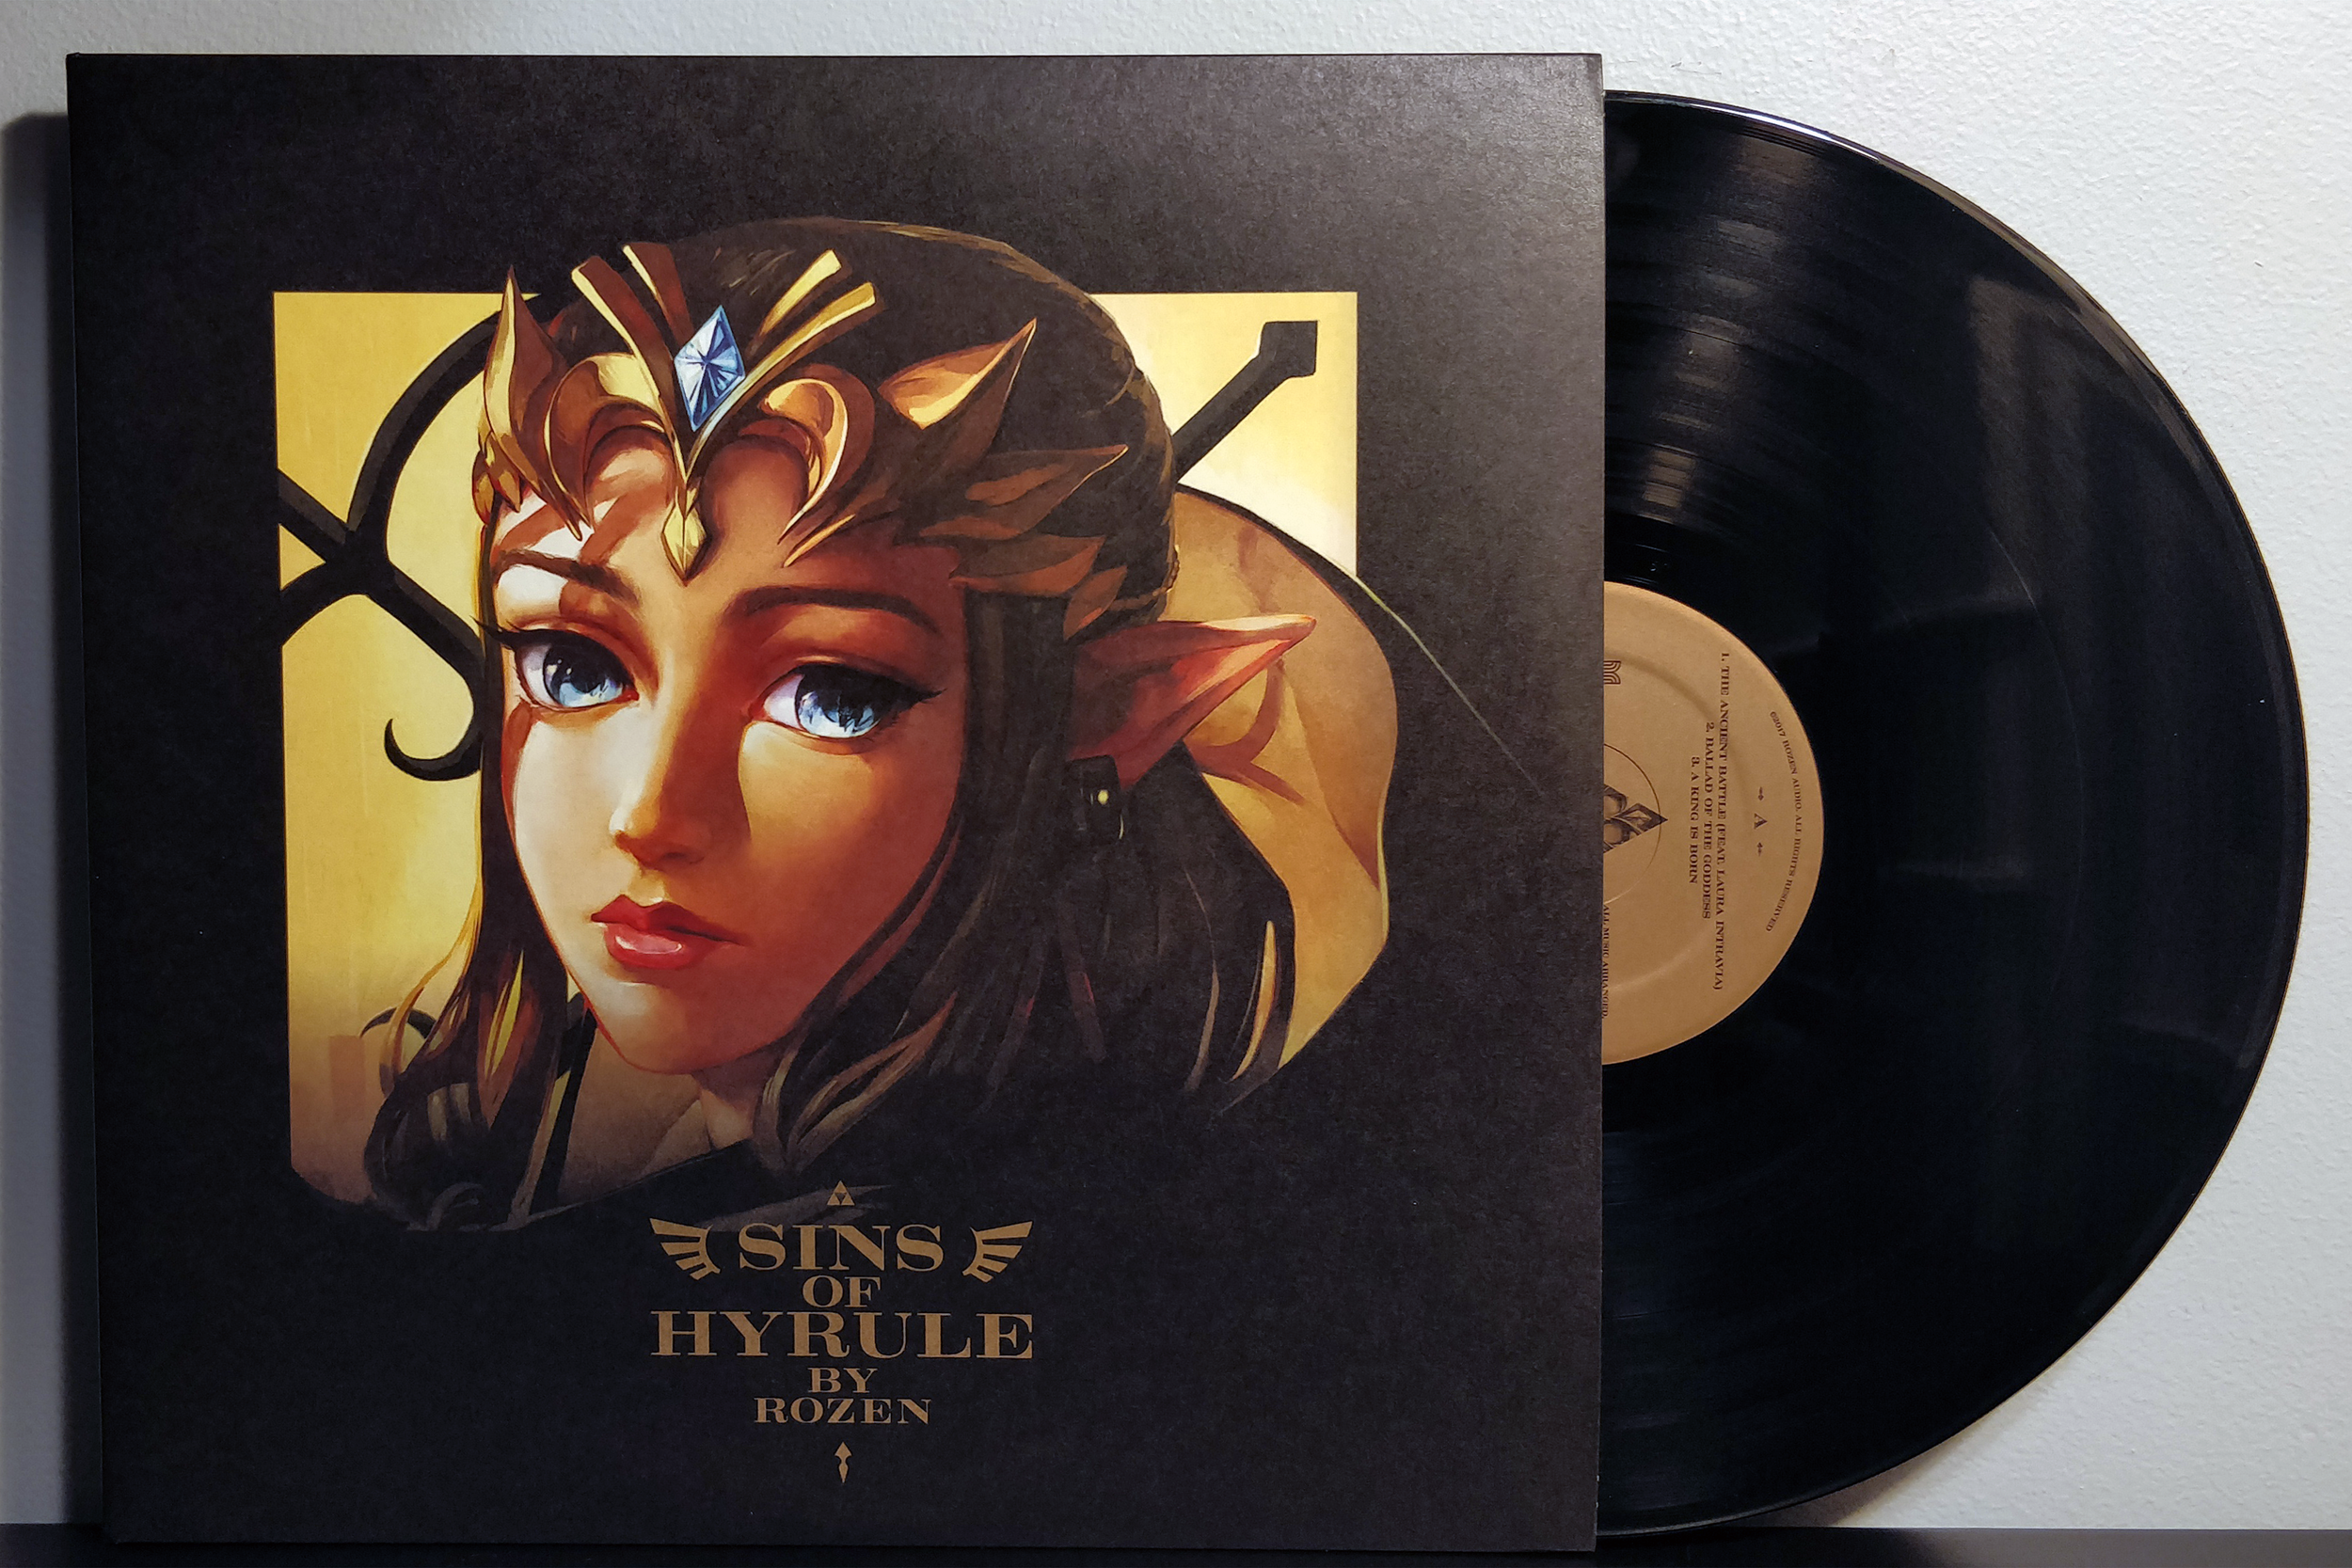 Sins of Hyrule by Rozen pressed on black vinyl by Materia Collective.